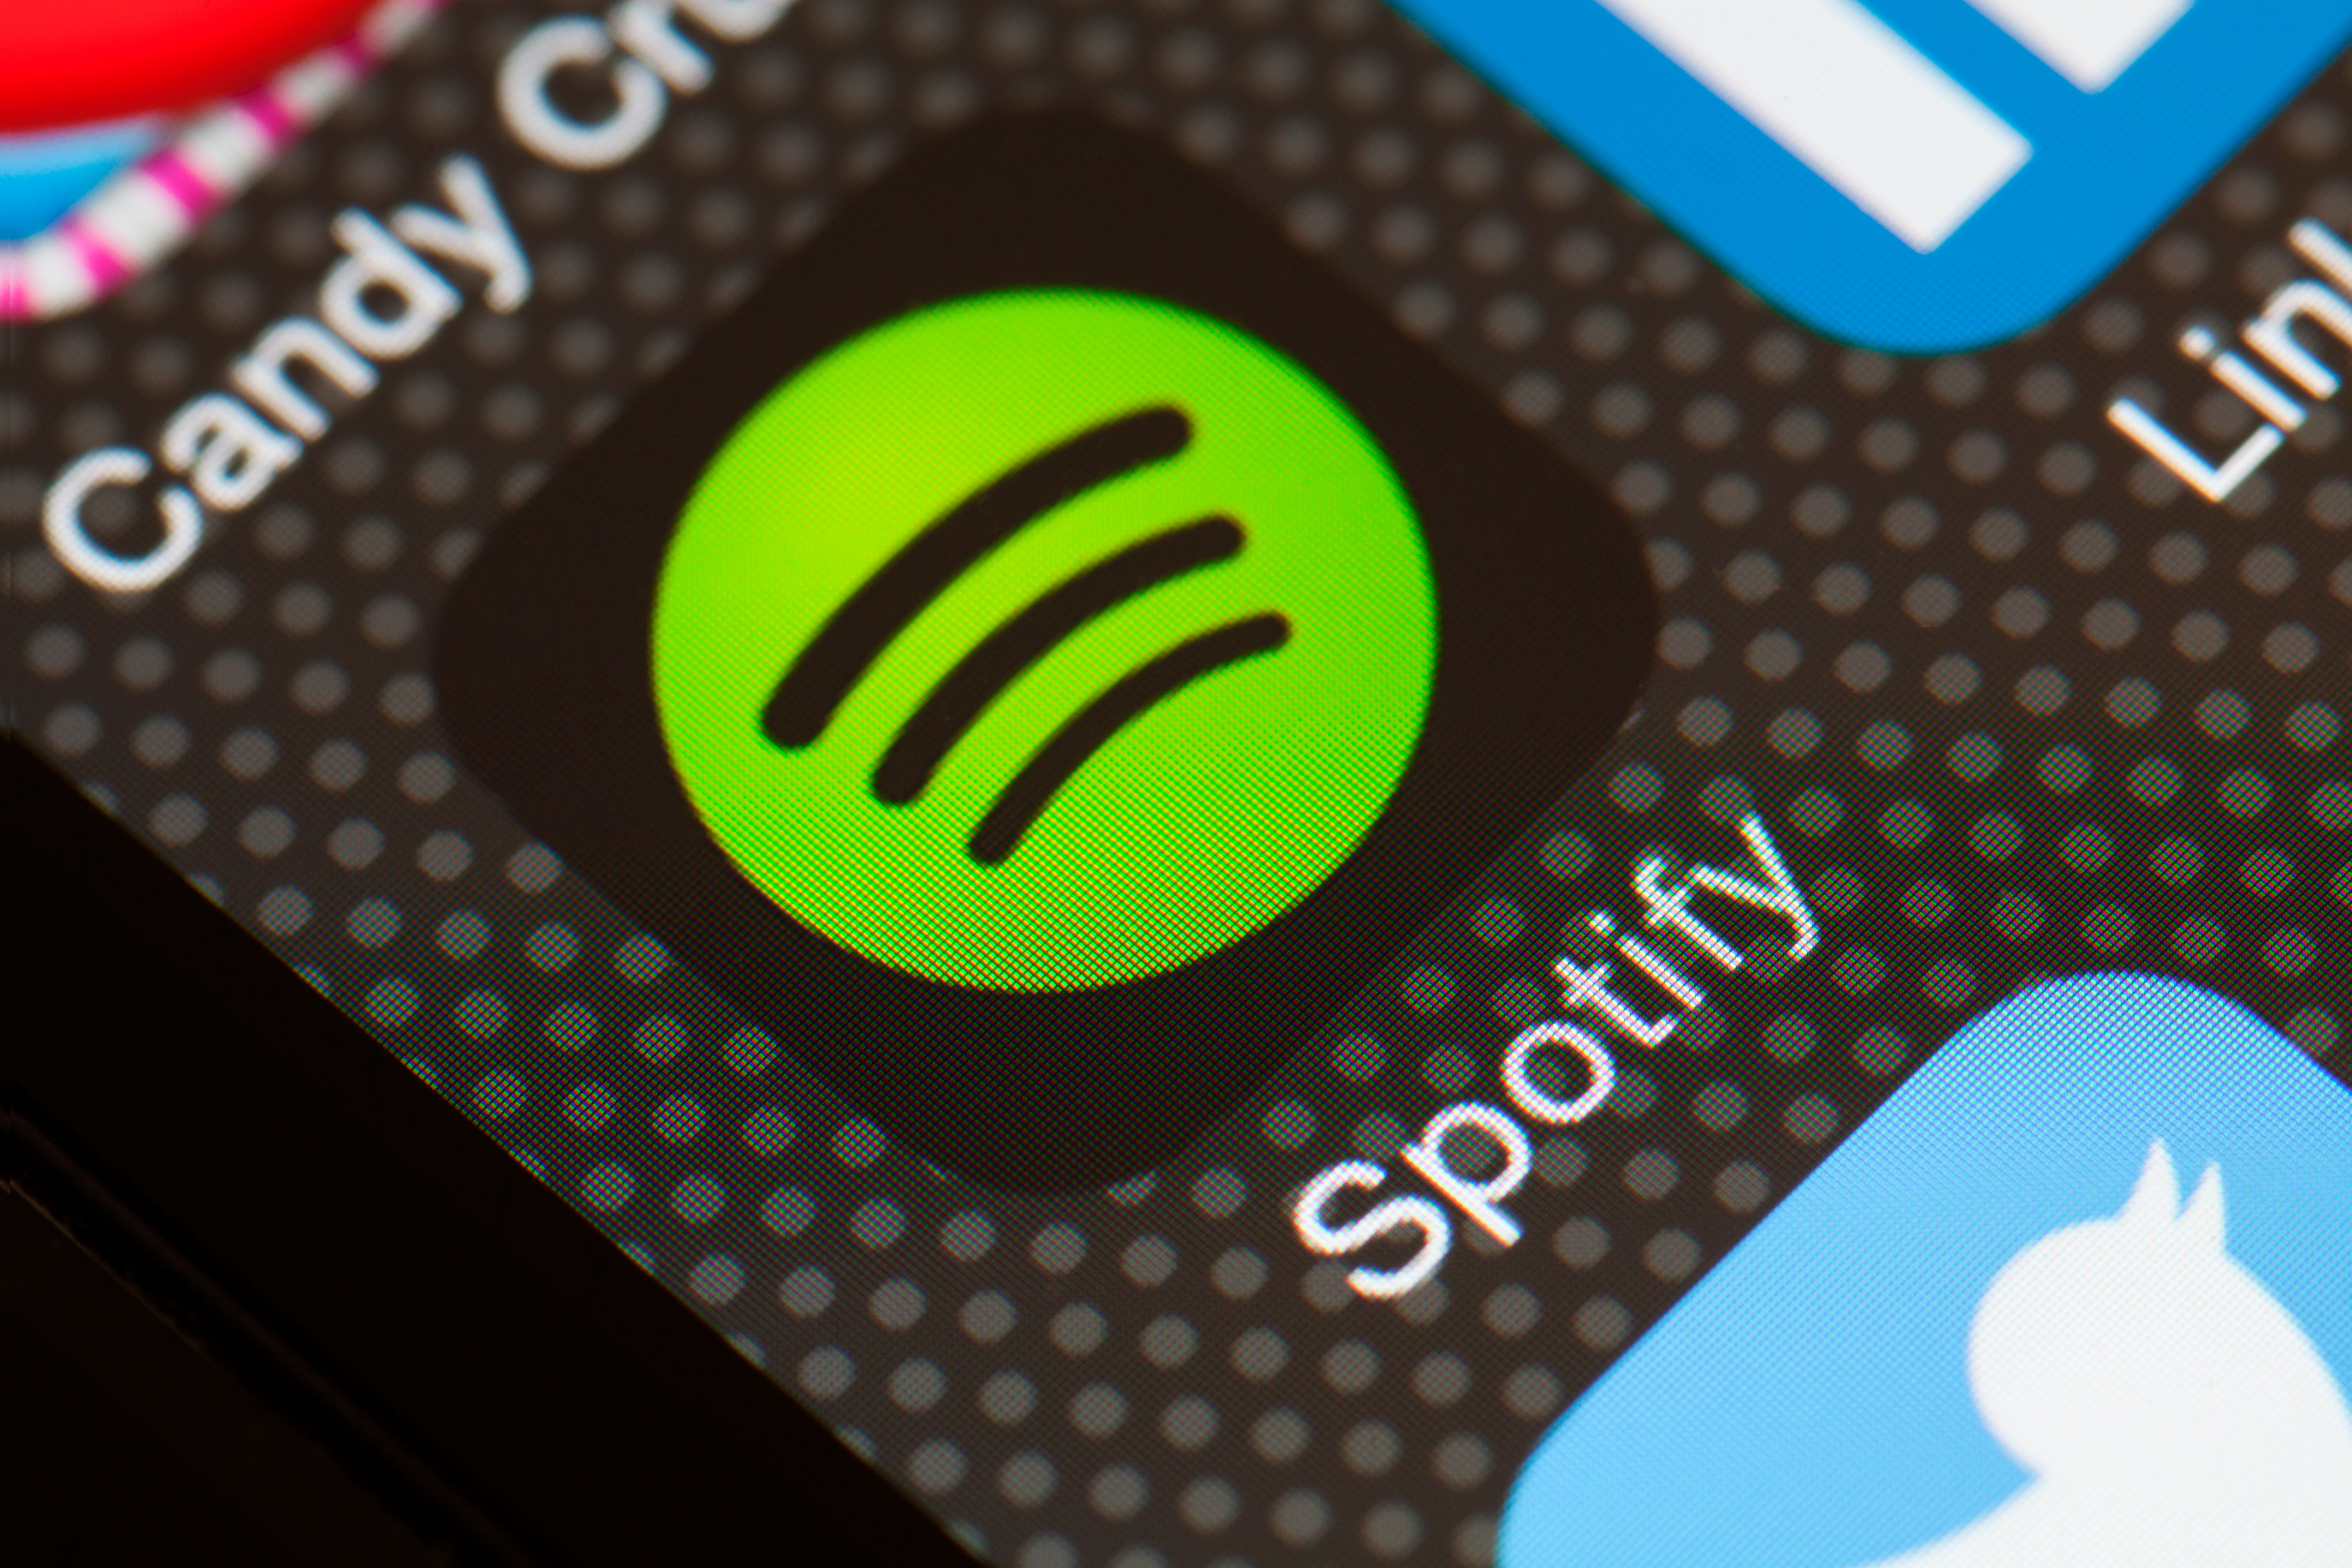 Spotify has announced a new price tier that allows users to listen to their favourite tunes in CD-quality format